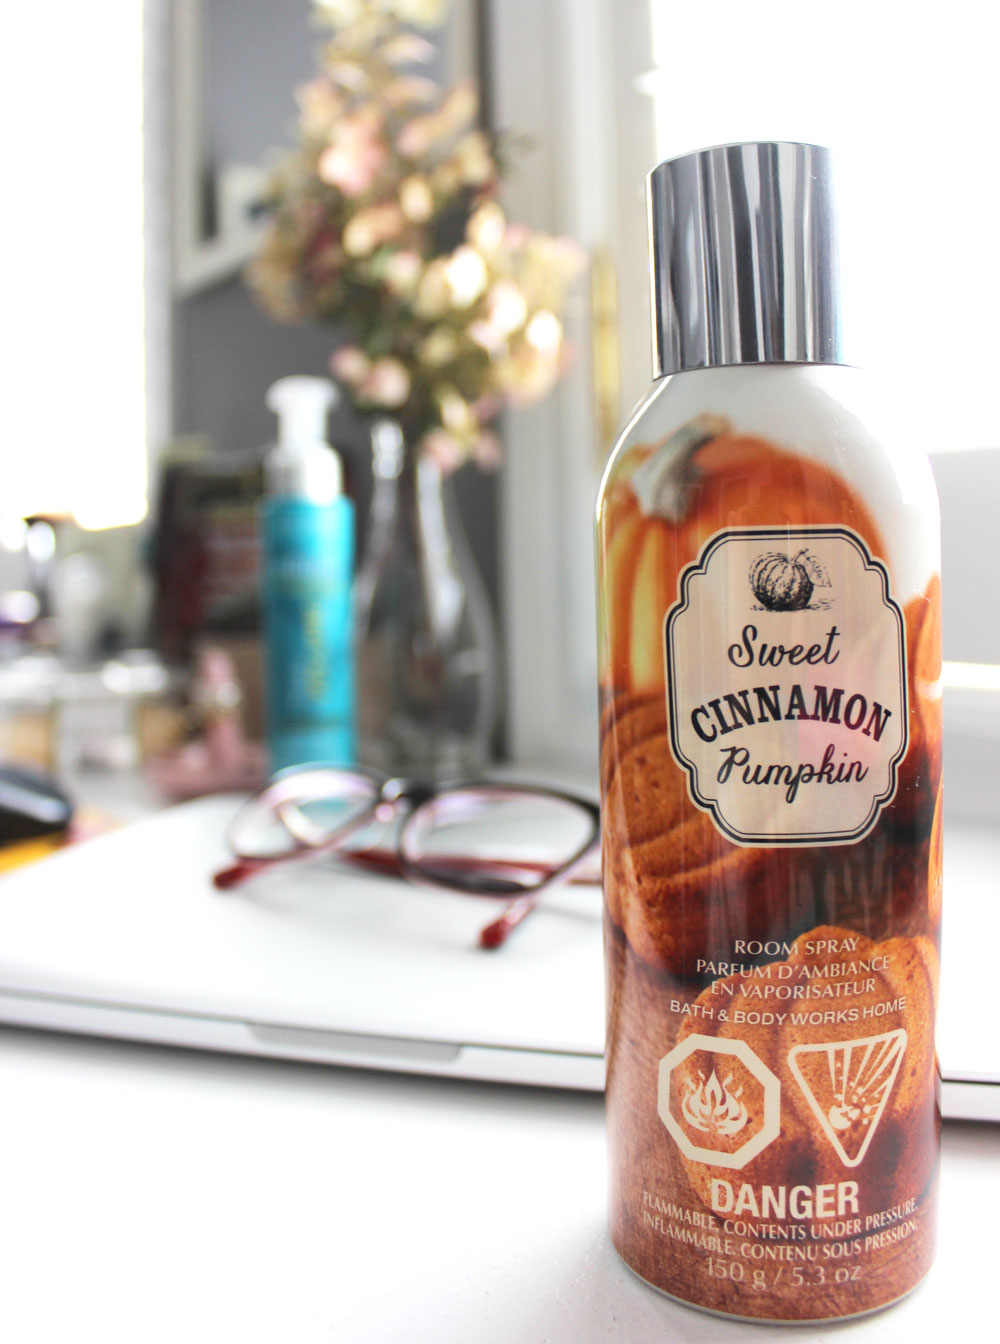 Life, lately - Cinnamon Pumpkin Room Spray